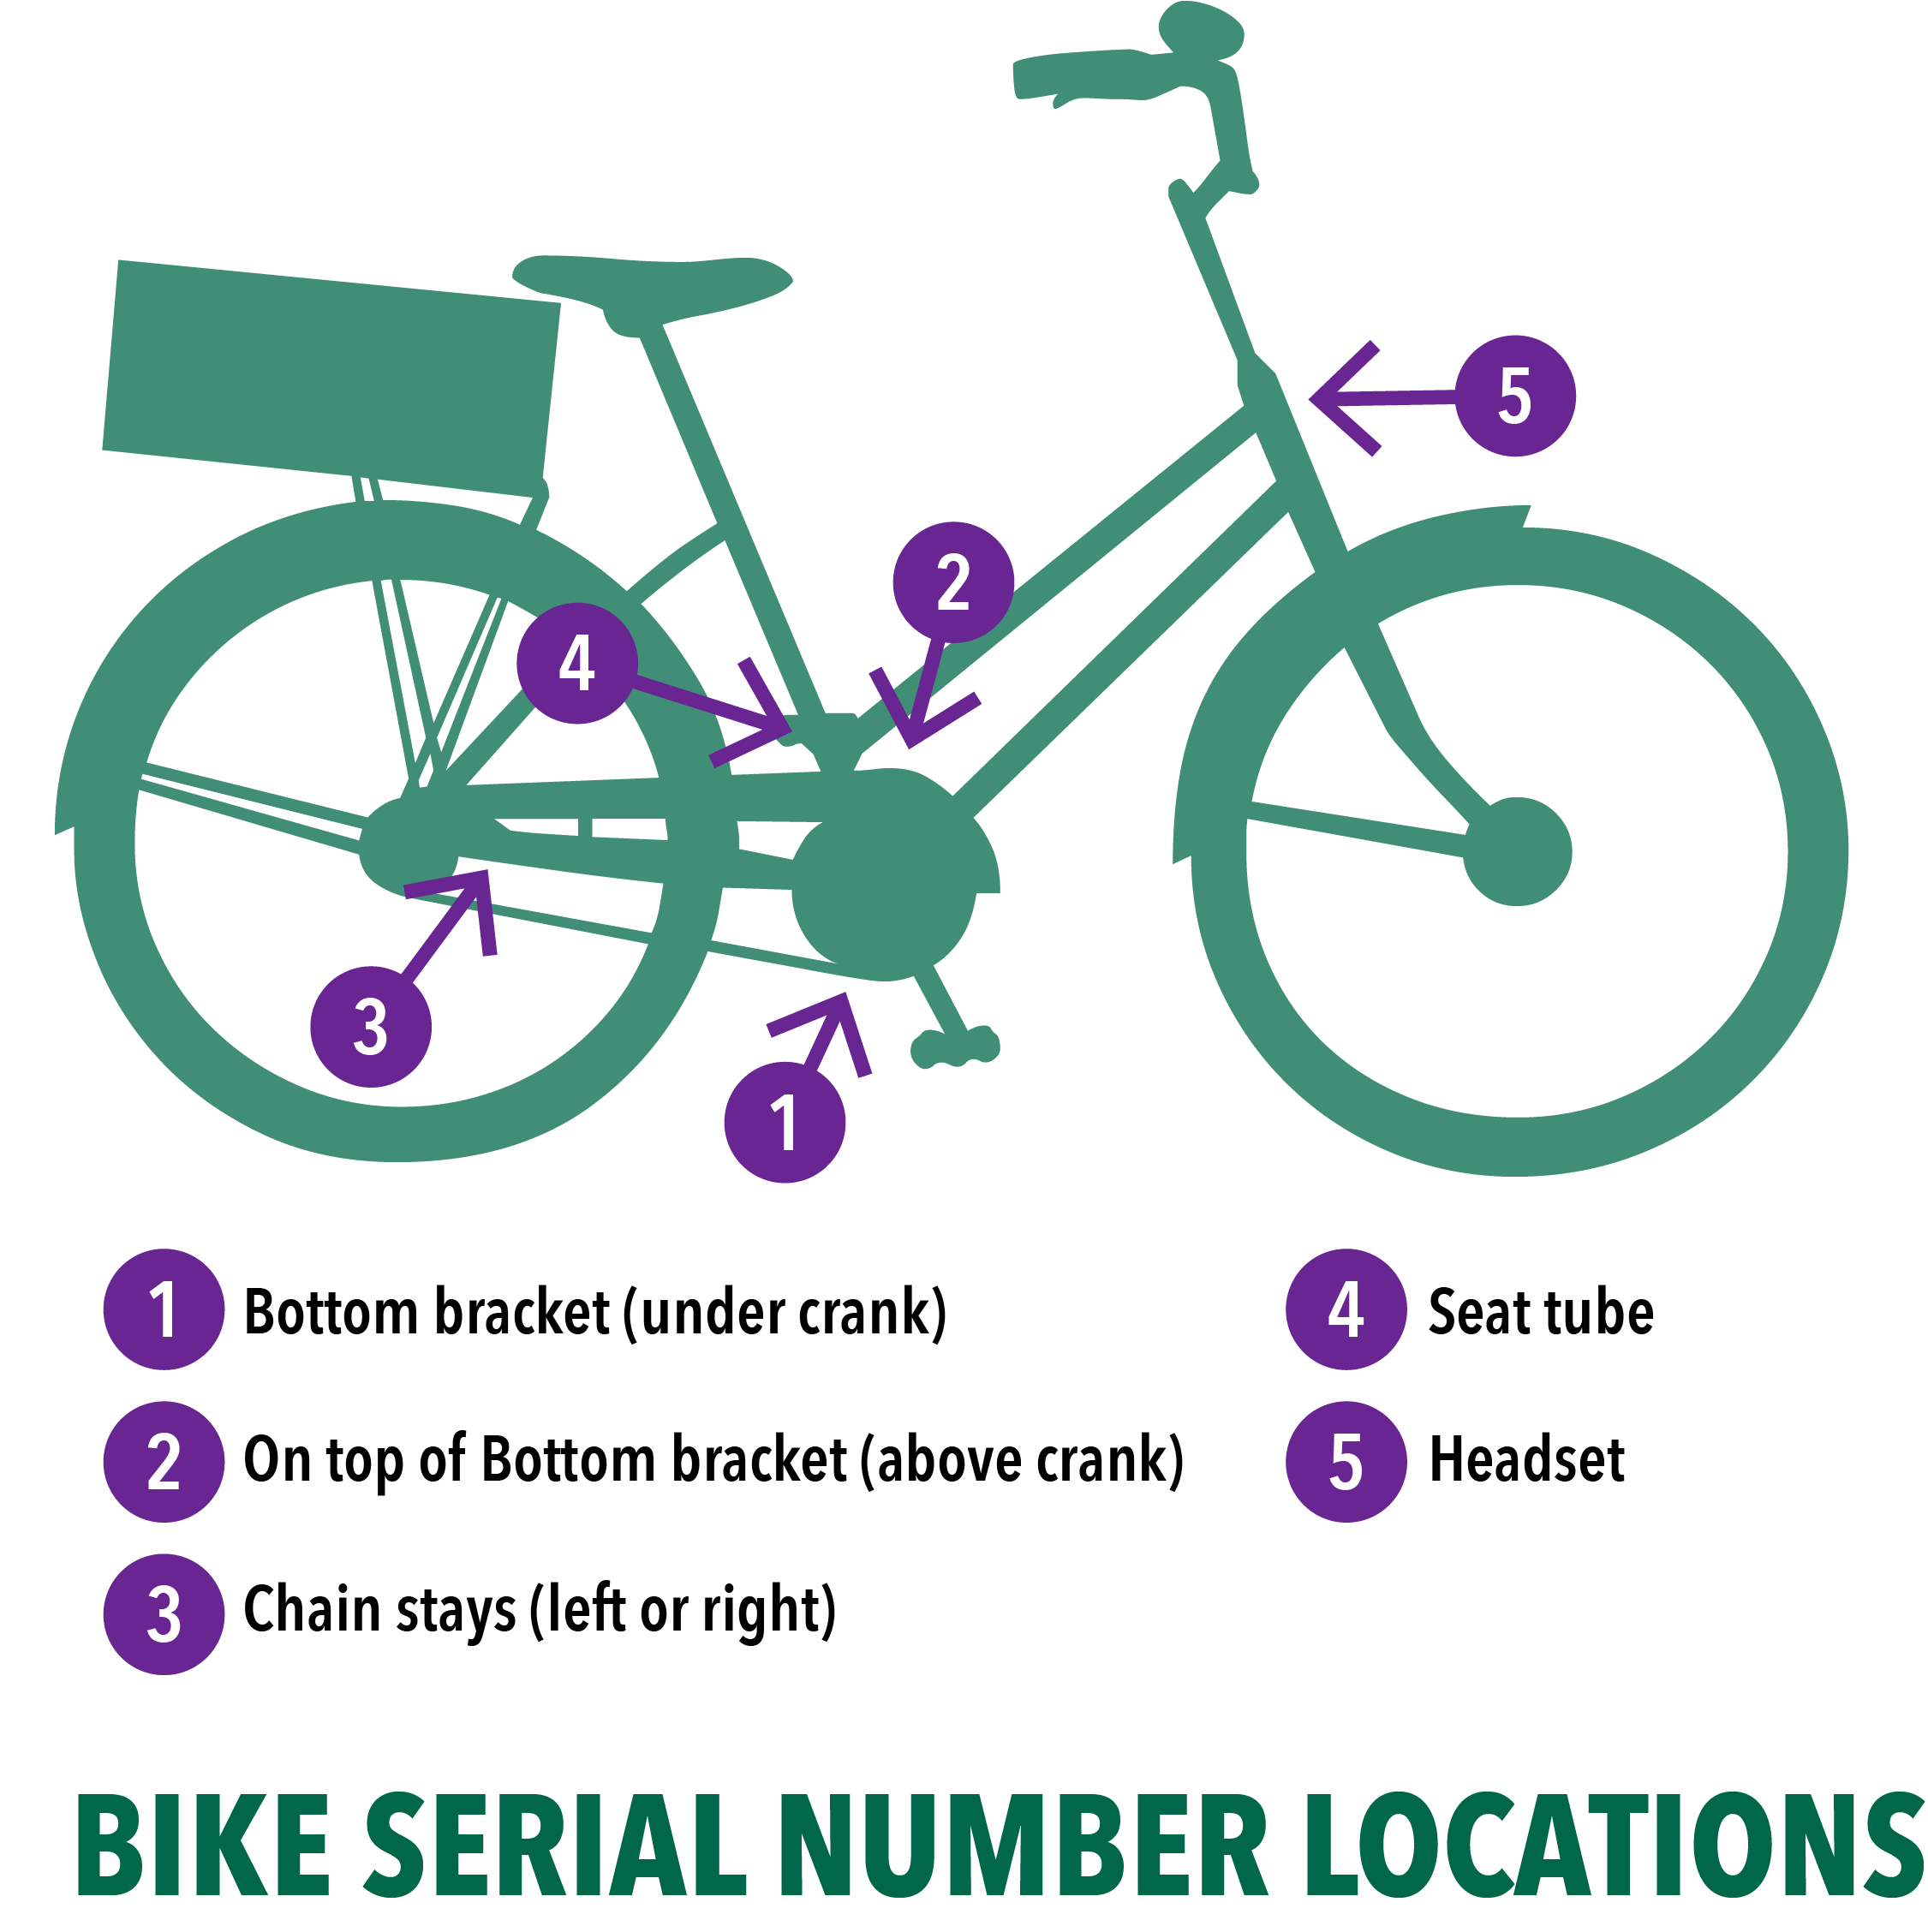 bike-serial-number-location.png